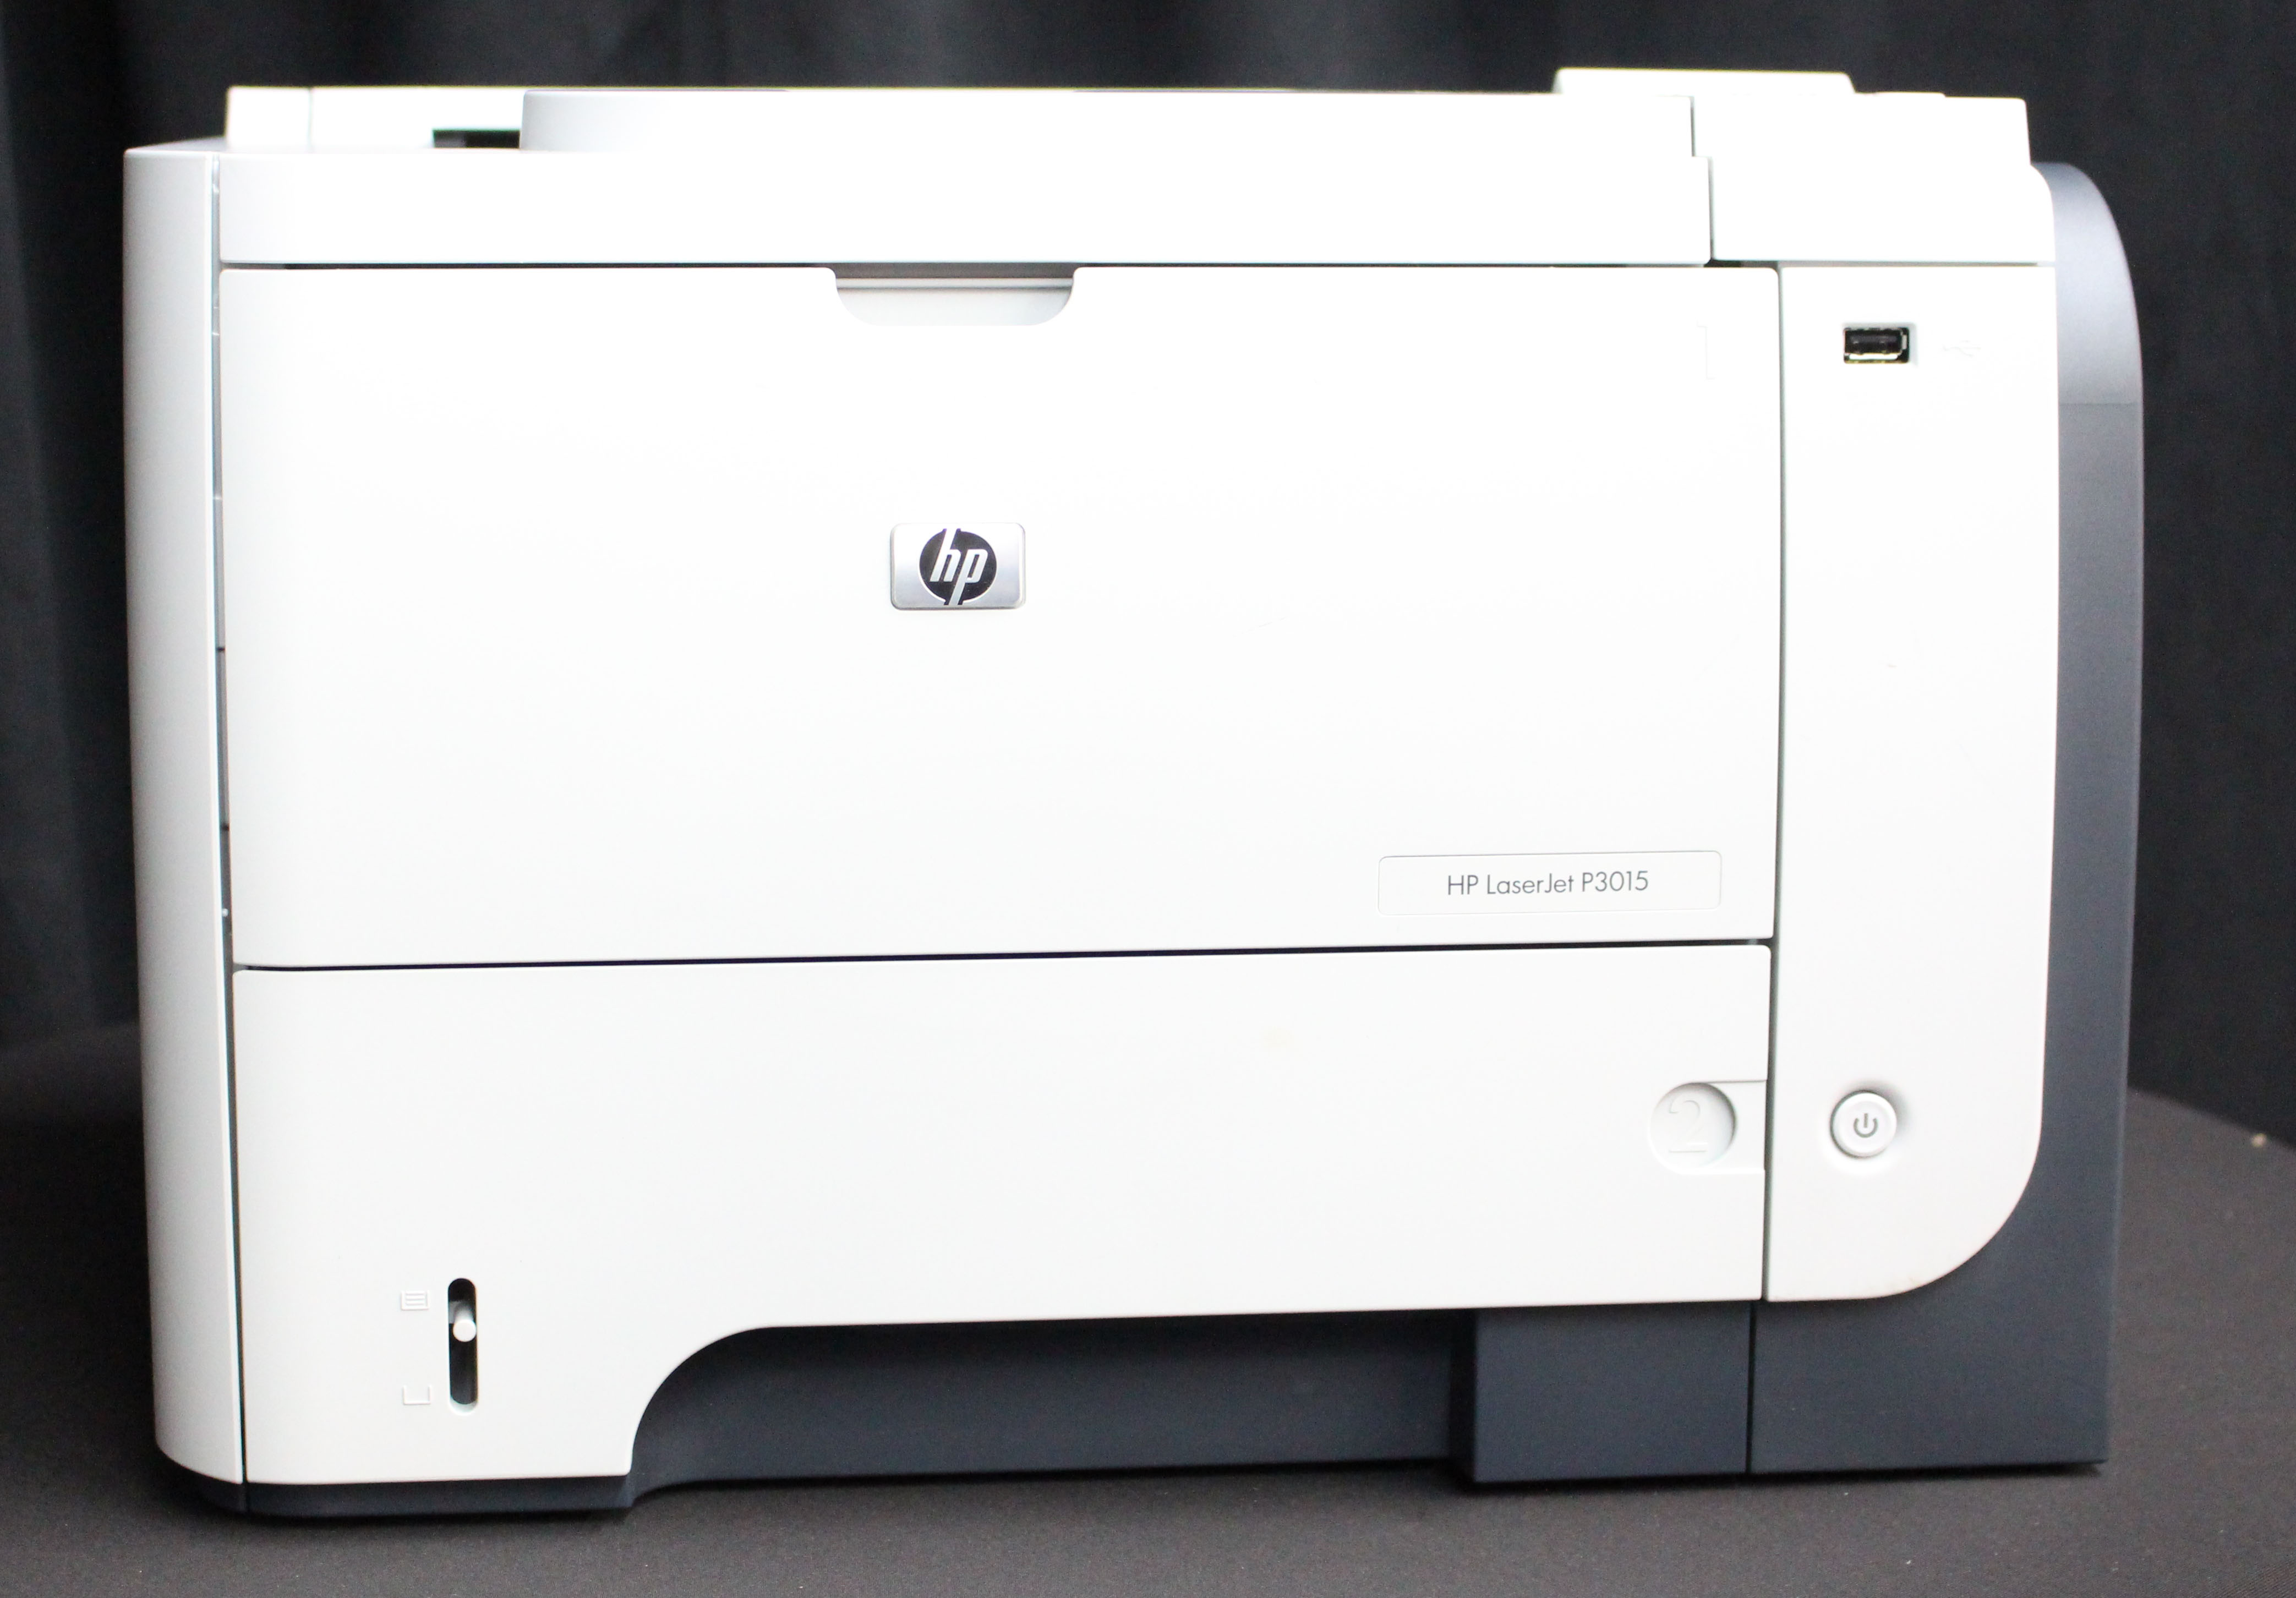 HP LASERJET P3015 PRINTER